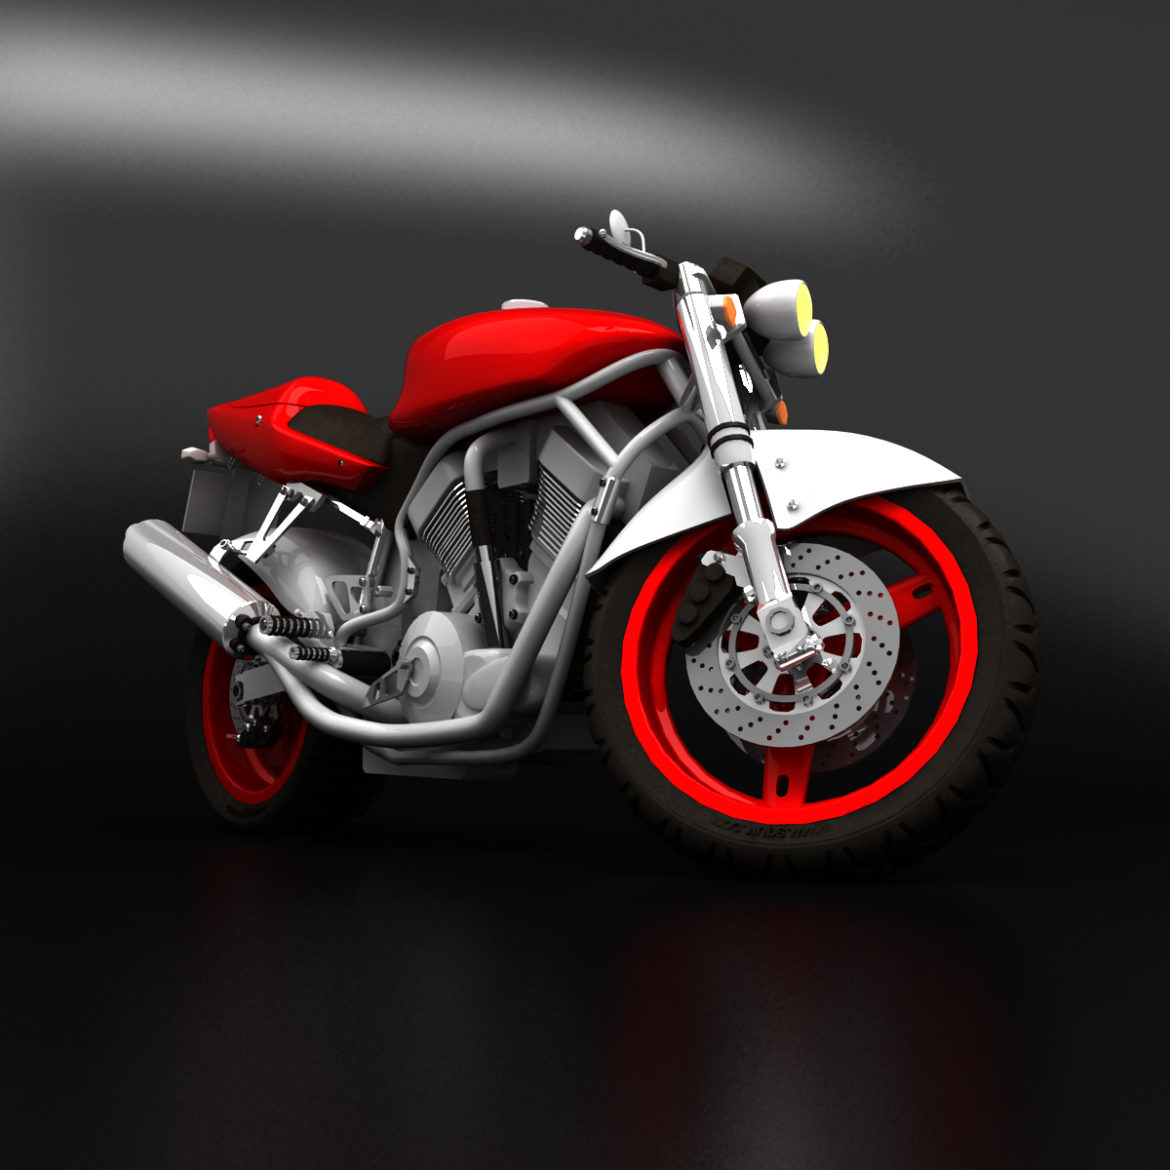 suzuki street fighter motorcycle 3d model 3ds max fbx obj 293867